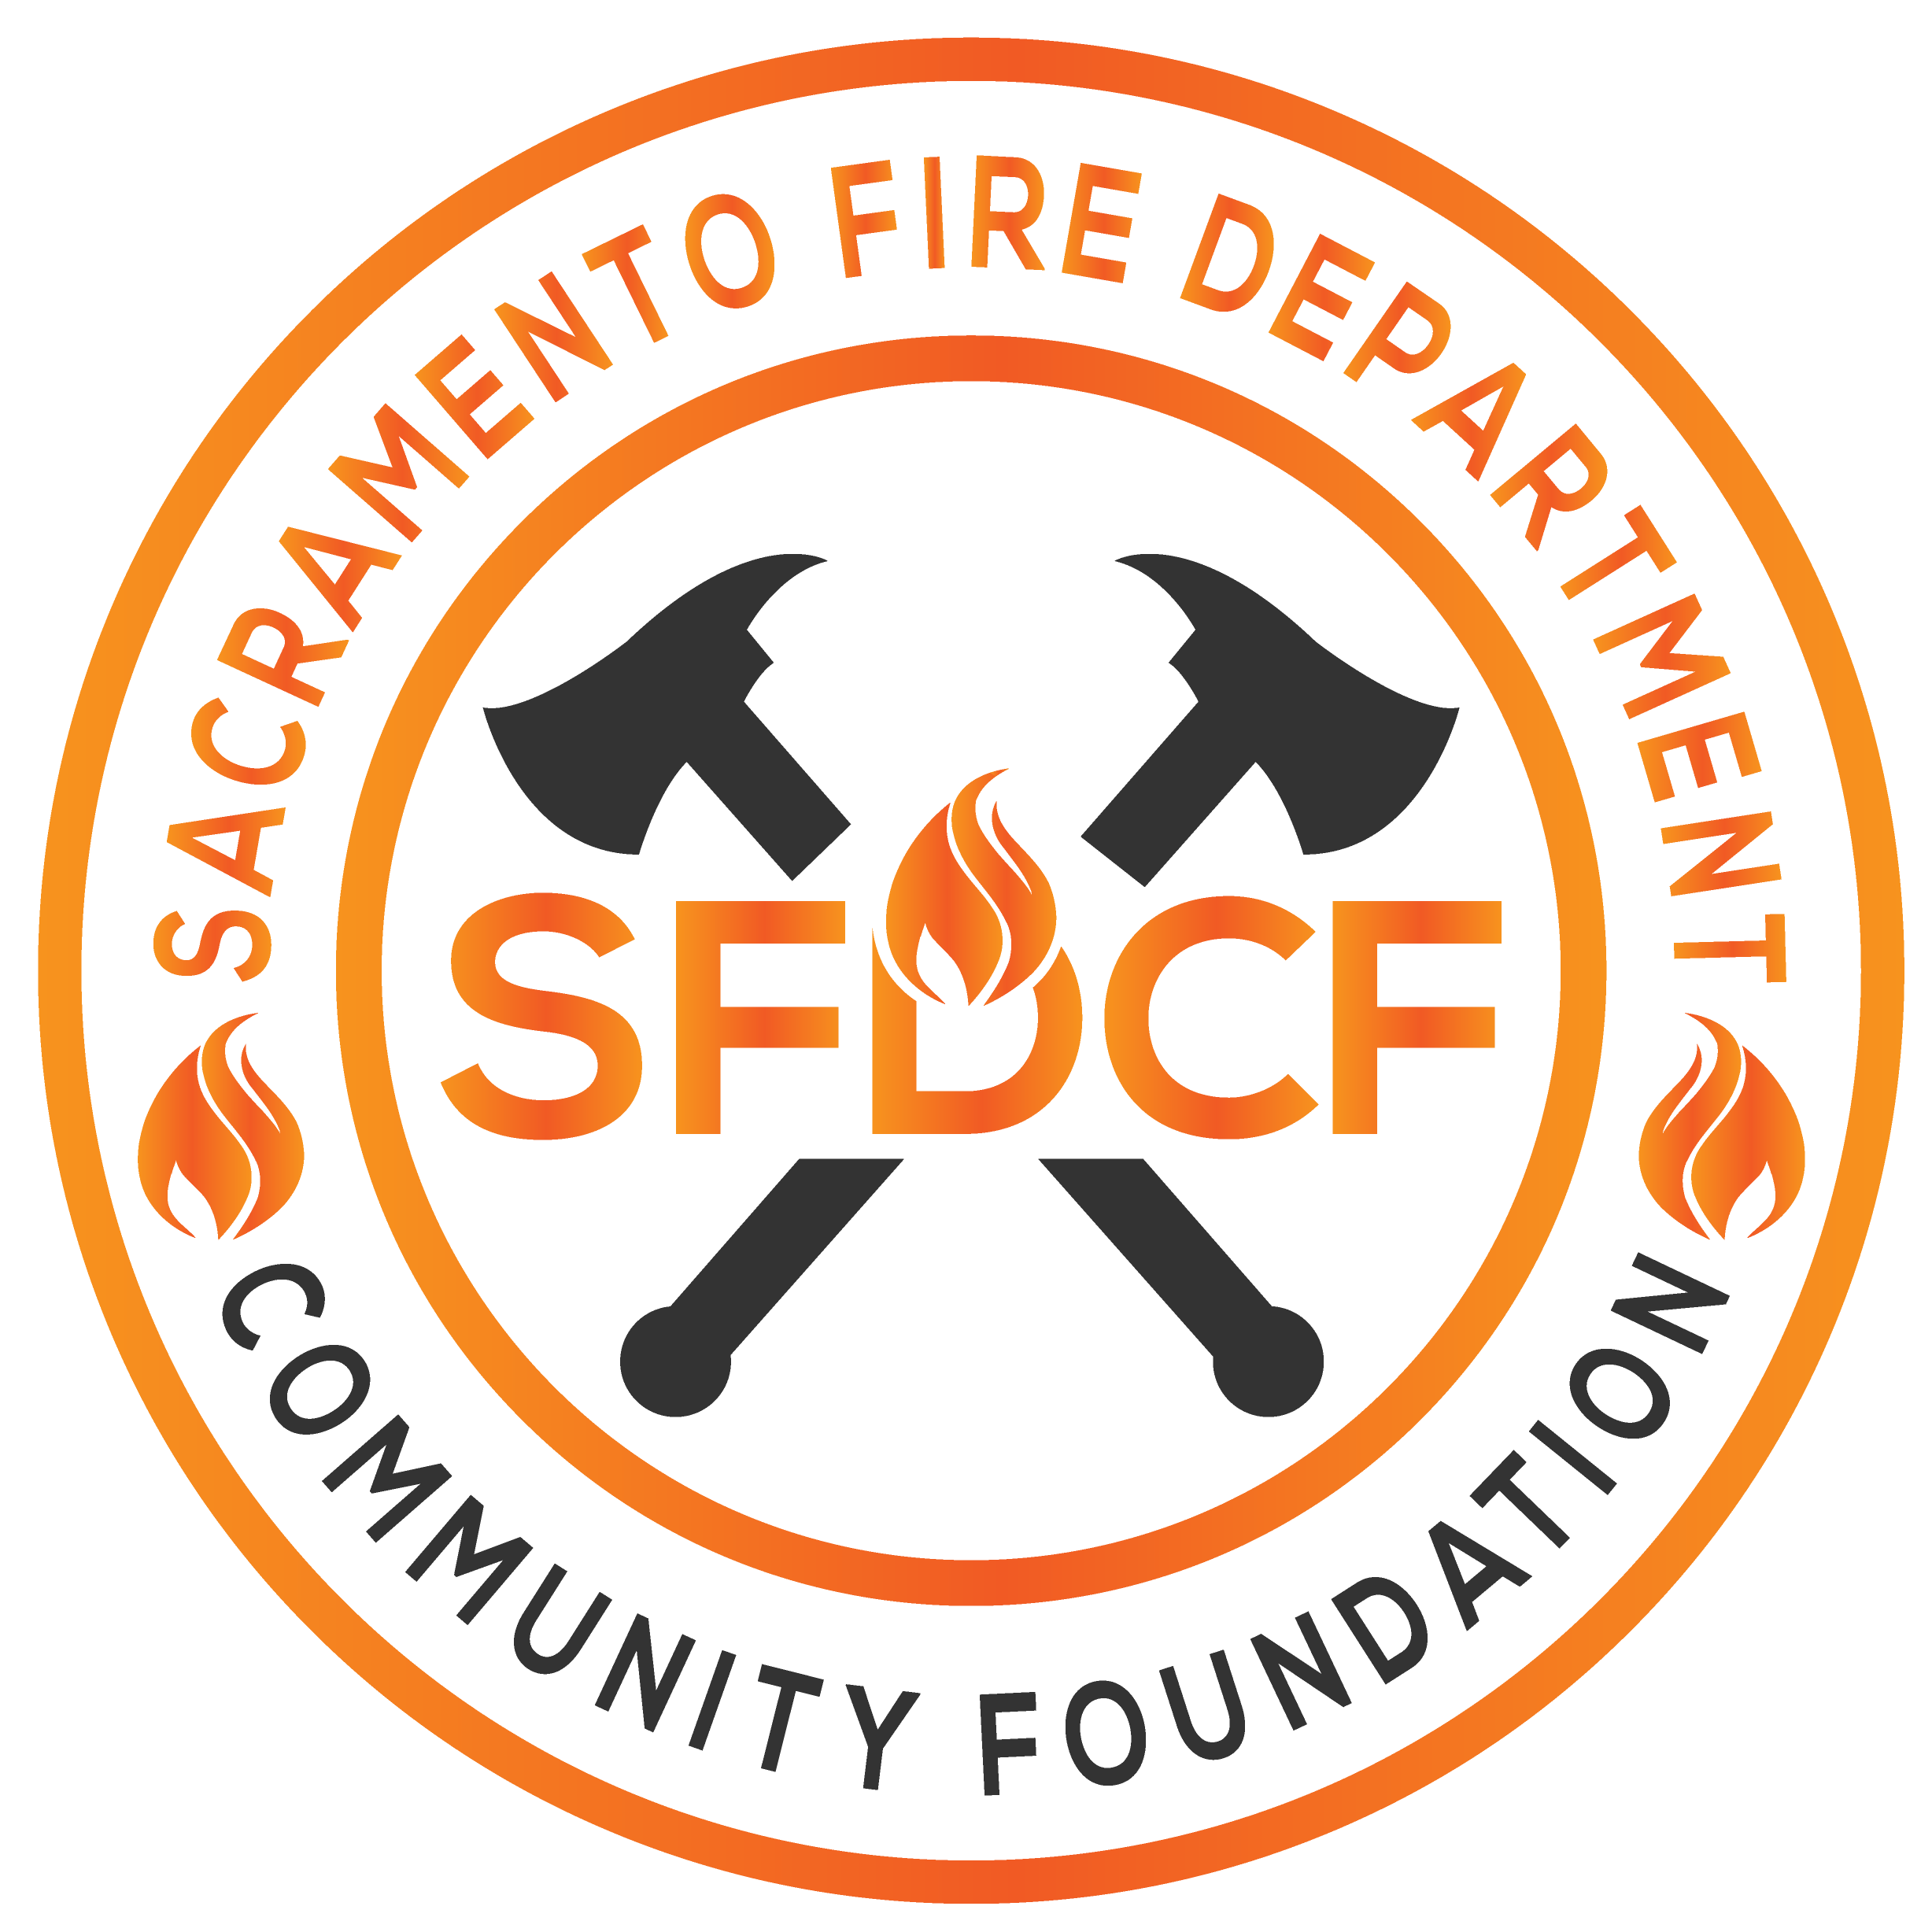 Who we support sacramento. Firefighter clipart fire protection